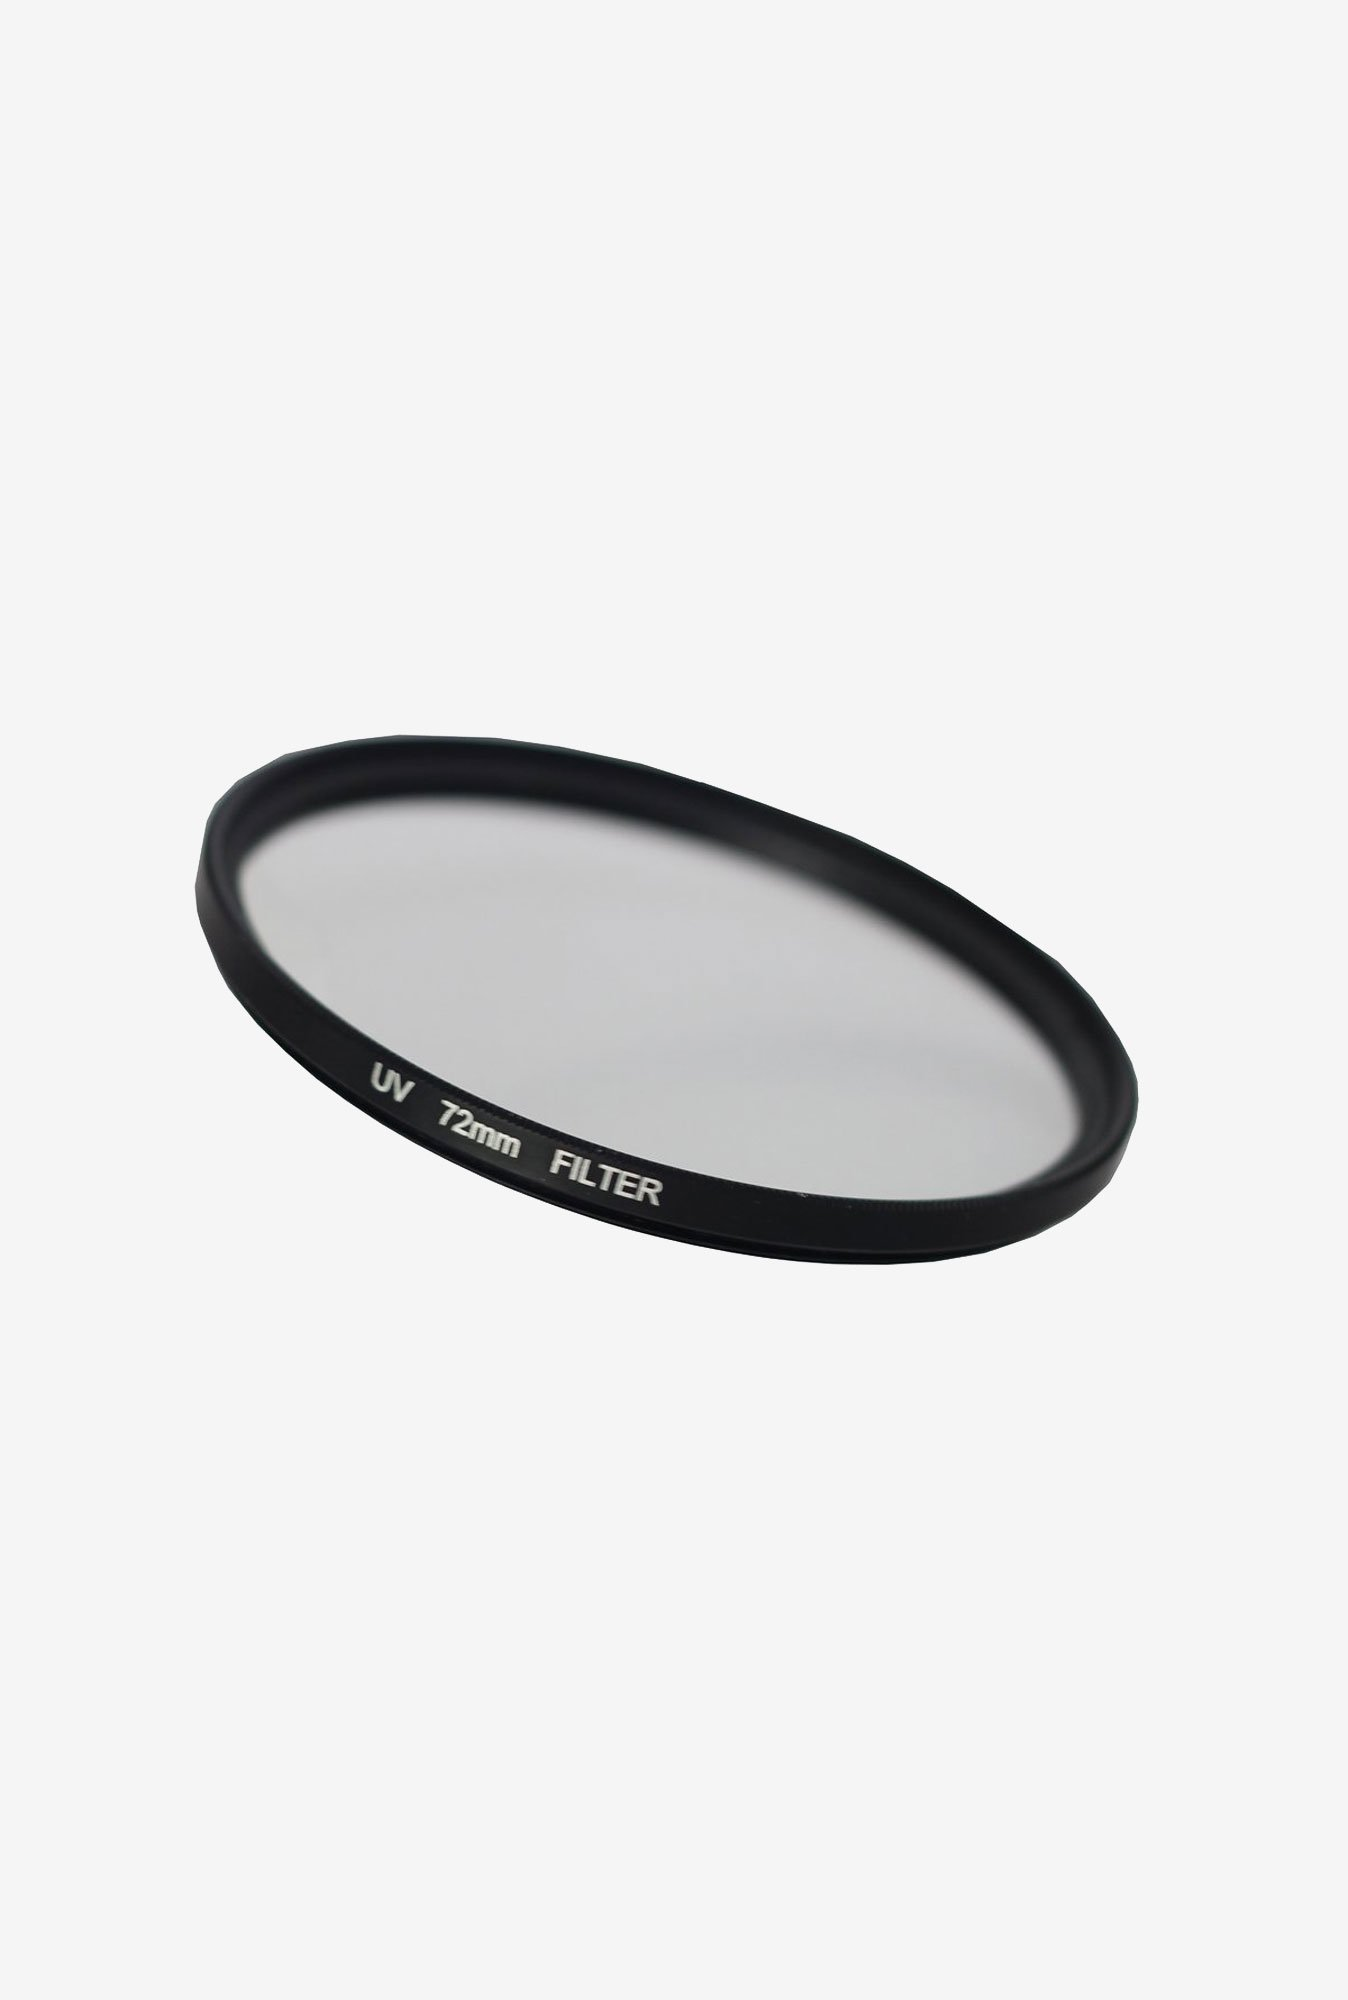 Neutral Mactrem 72mm UV Filter Lens Protector (Black)